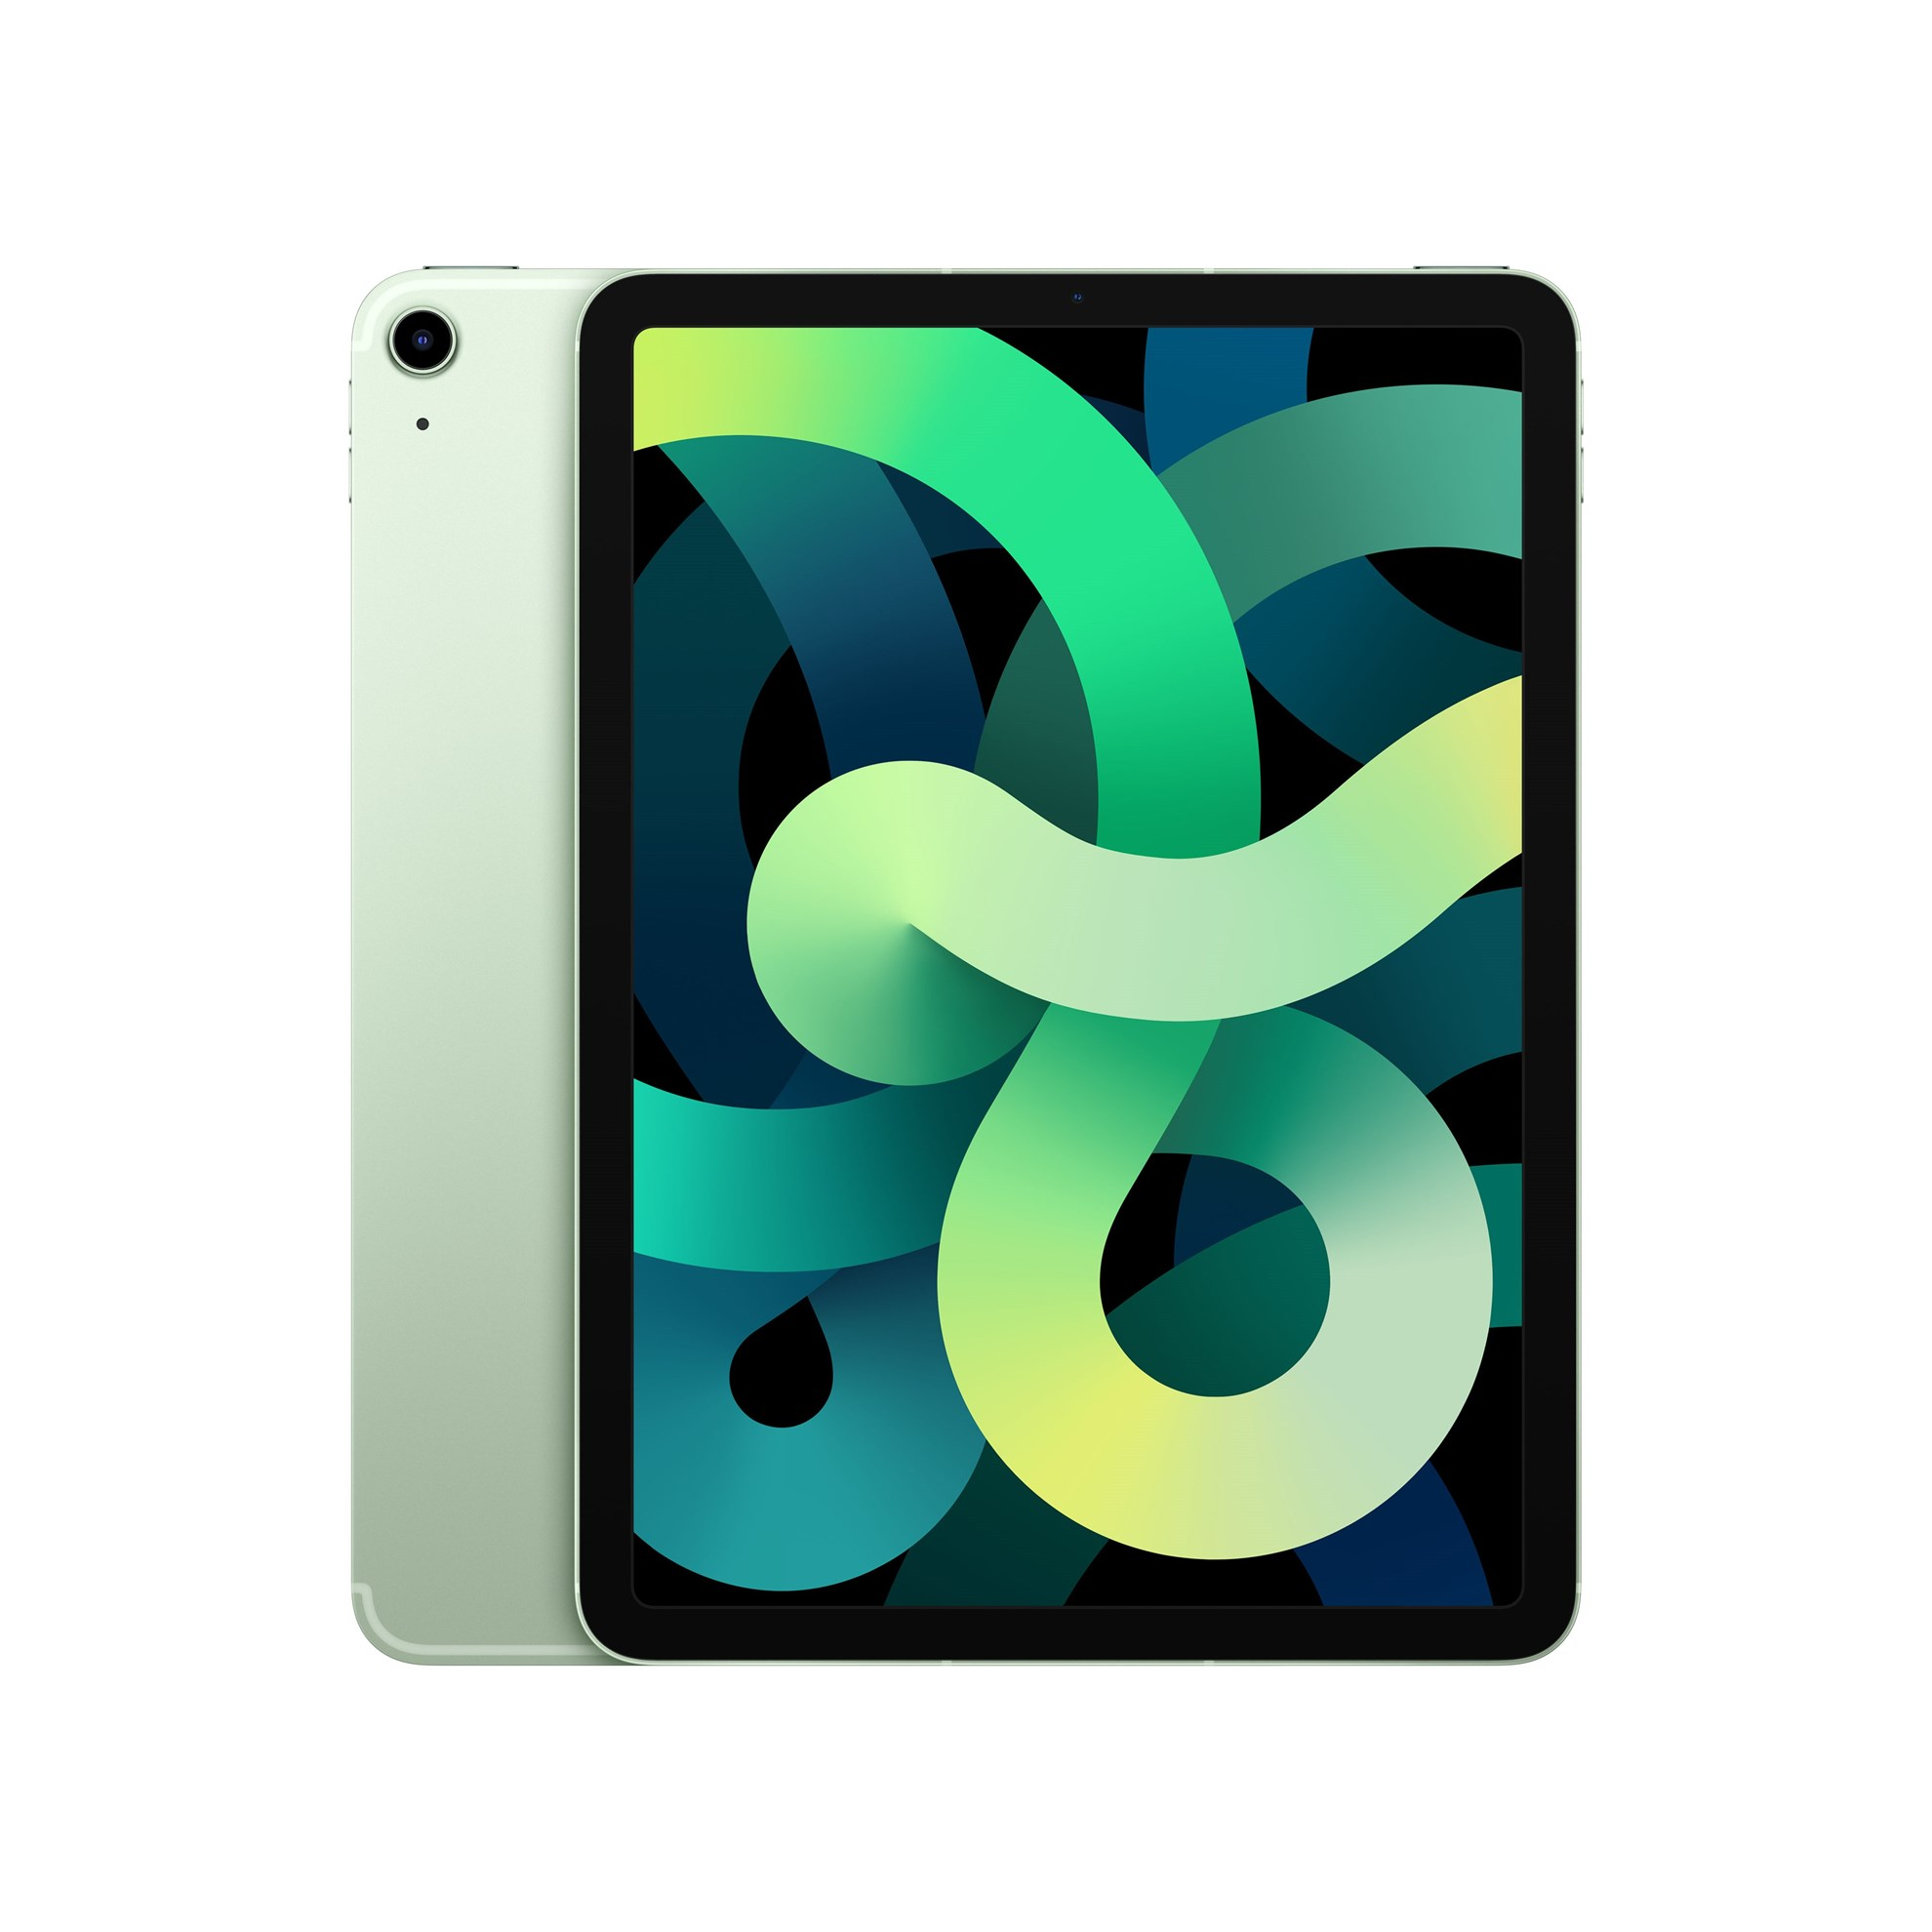 "iPad Air 10.9"" - MYG02B/A"